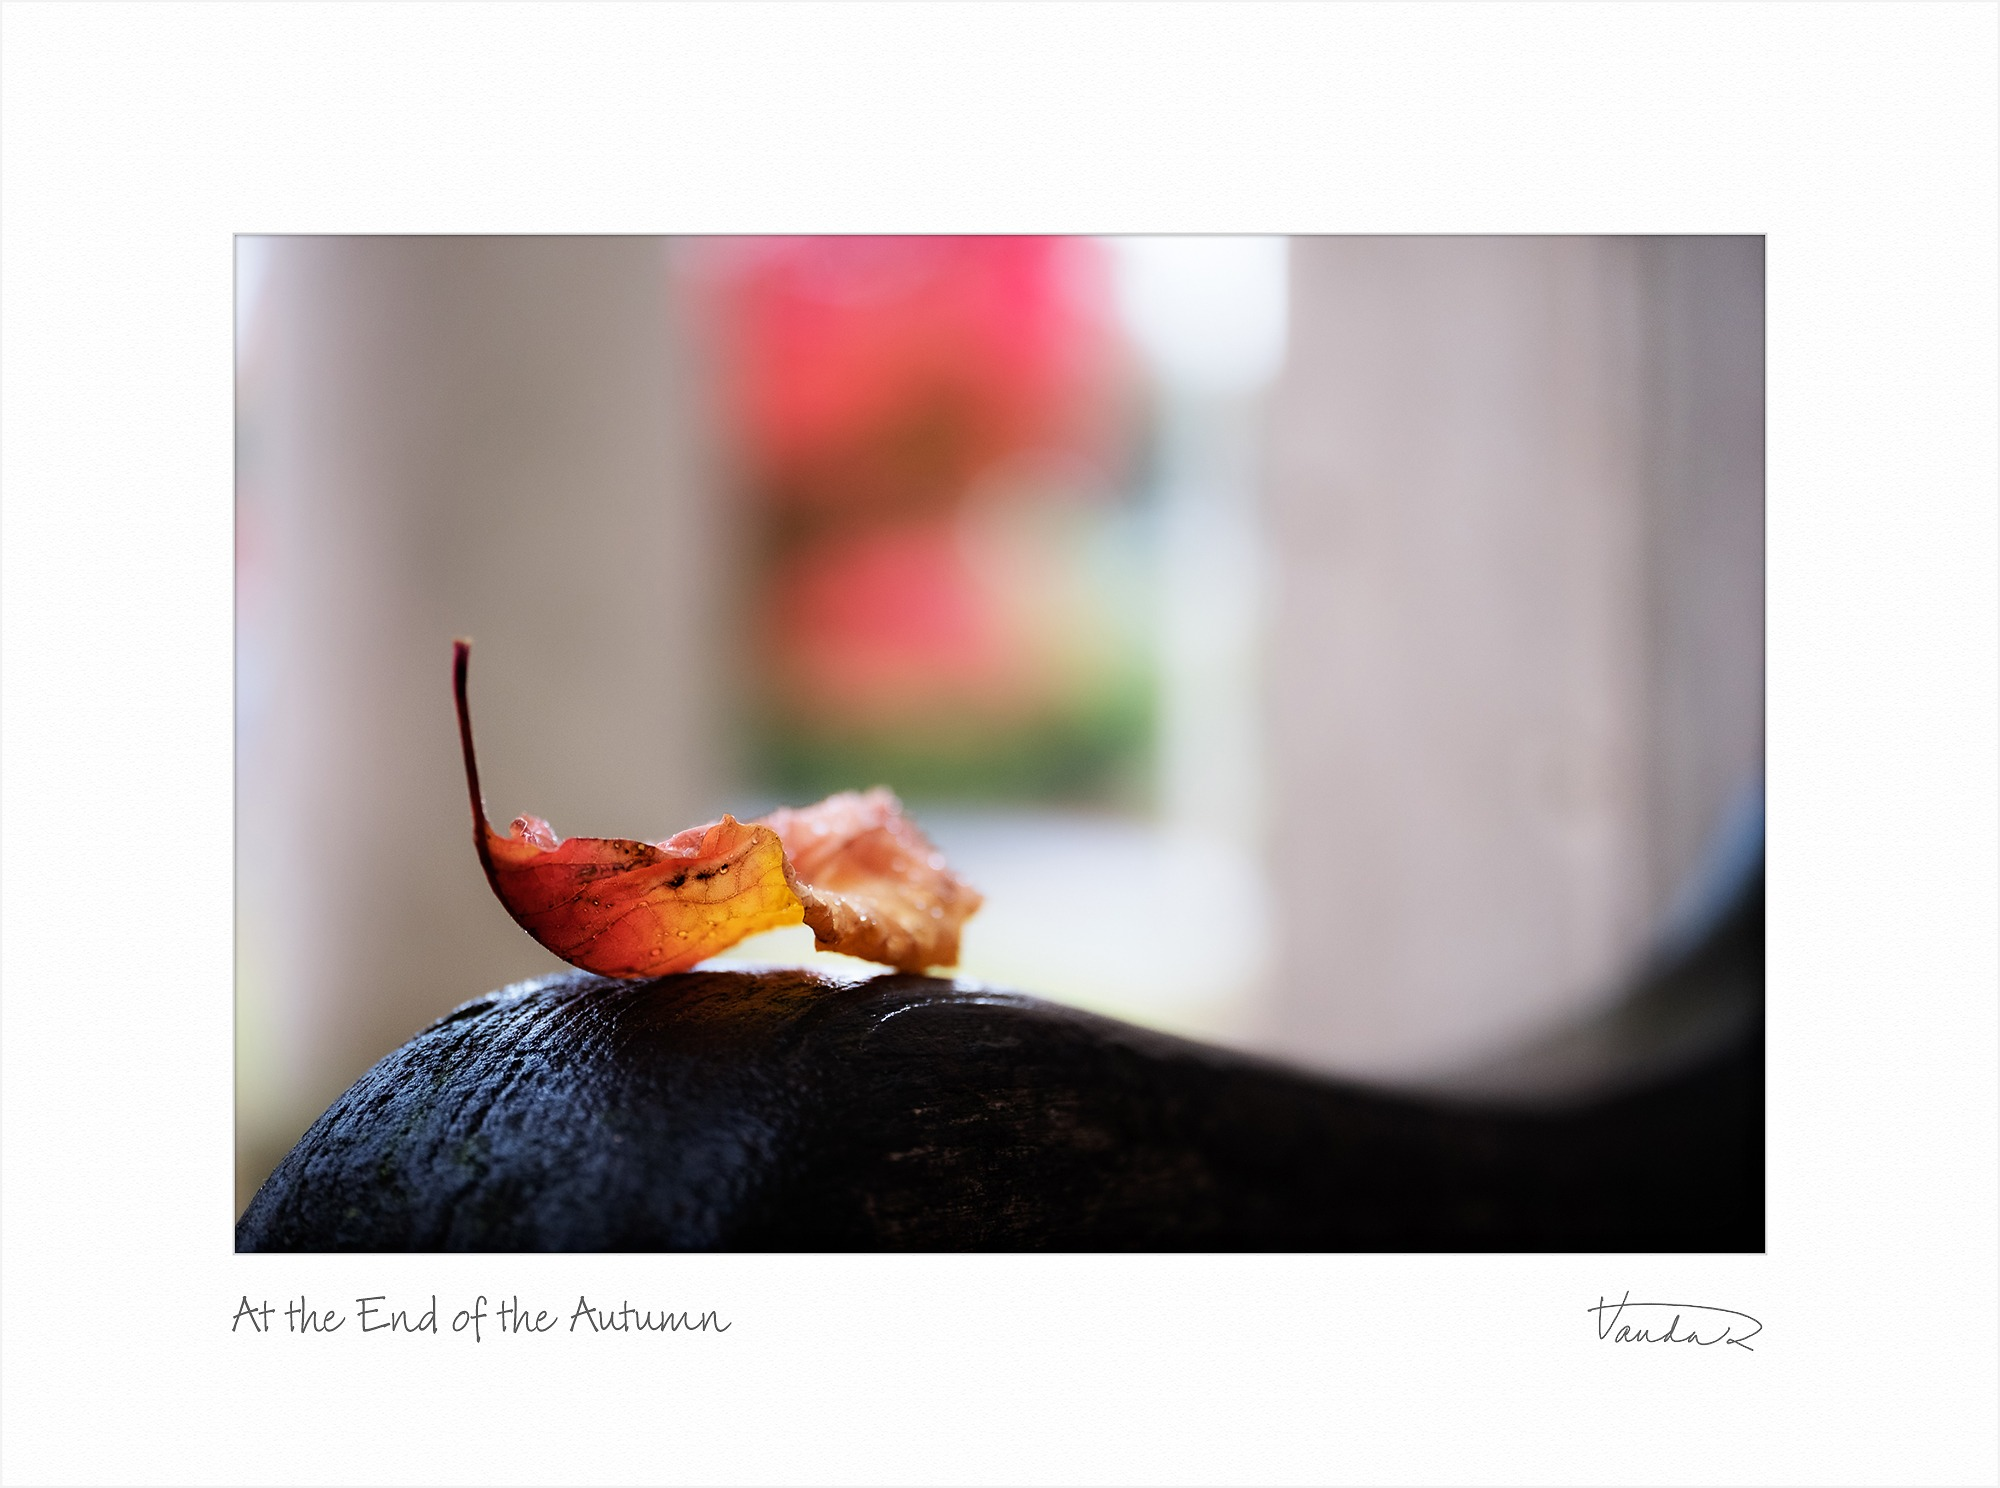 At the end of the Autumn